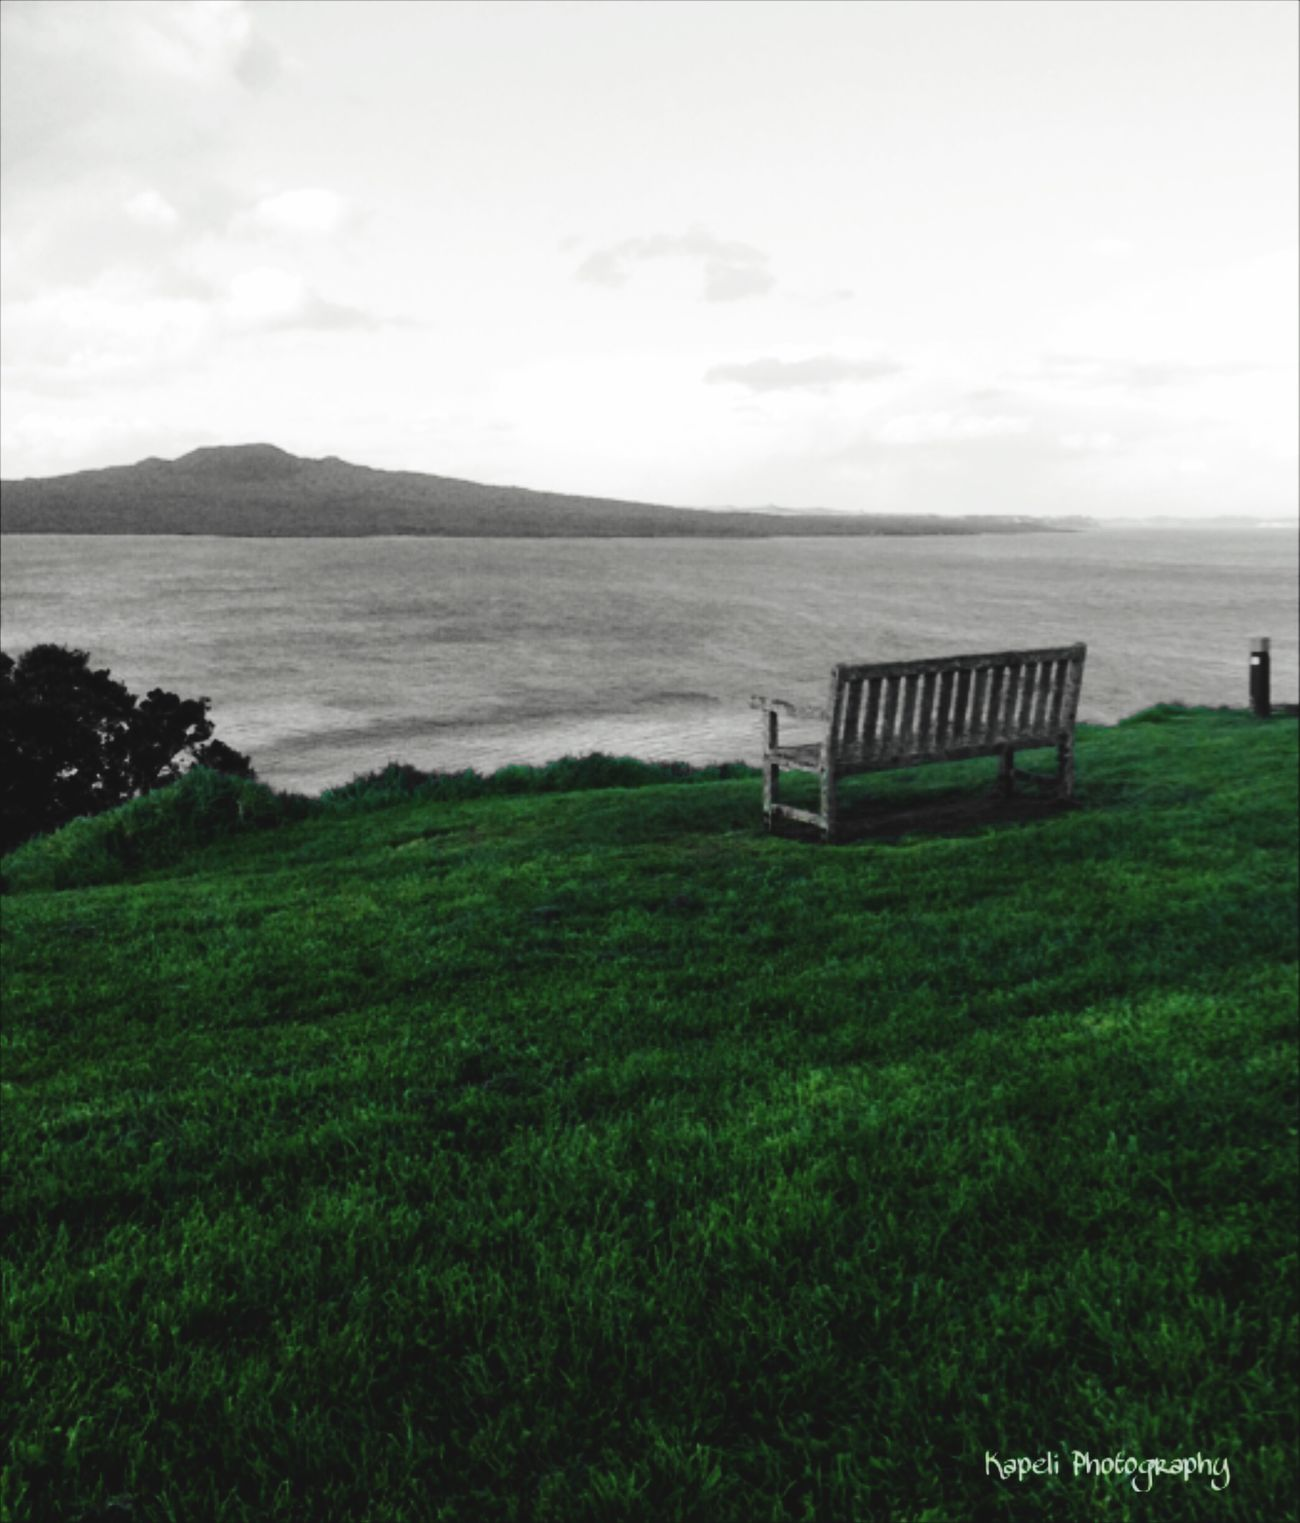 Rangitoto Rangitoto Island Rangitoto Sleeping Volcano Enjoying The View Amazing View Seat Water EyeEm Nature Lover IPhoneography Coloursplash